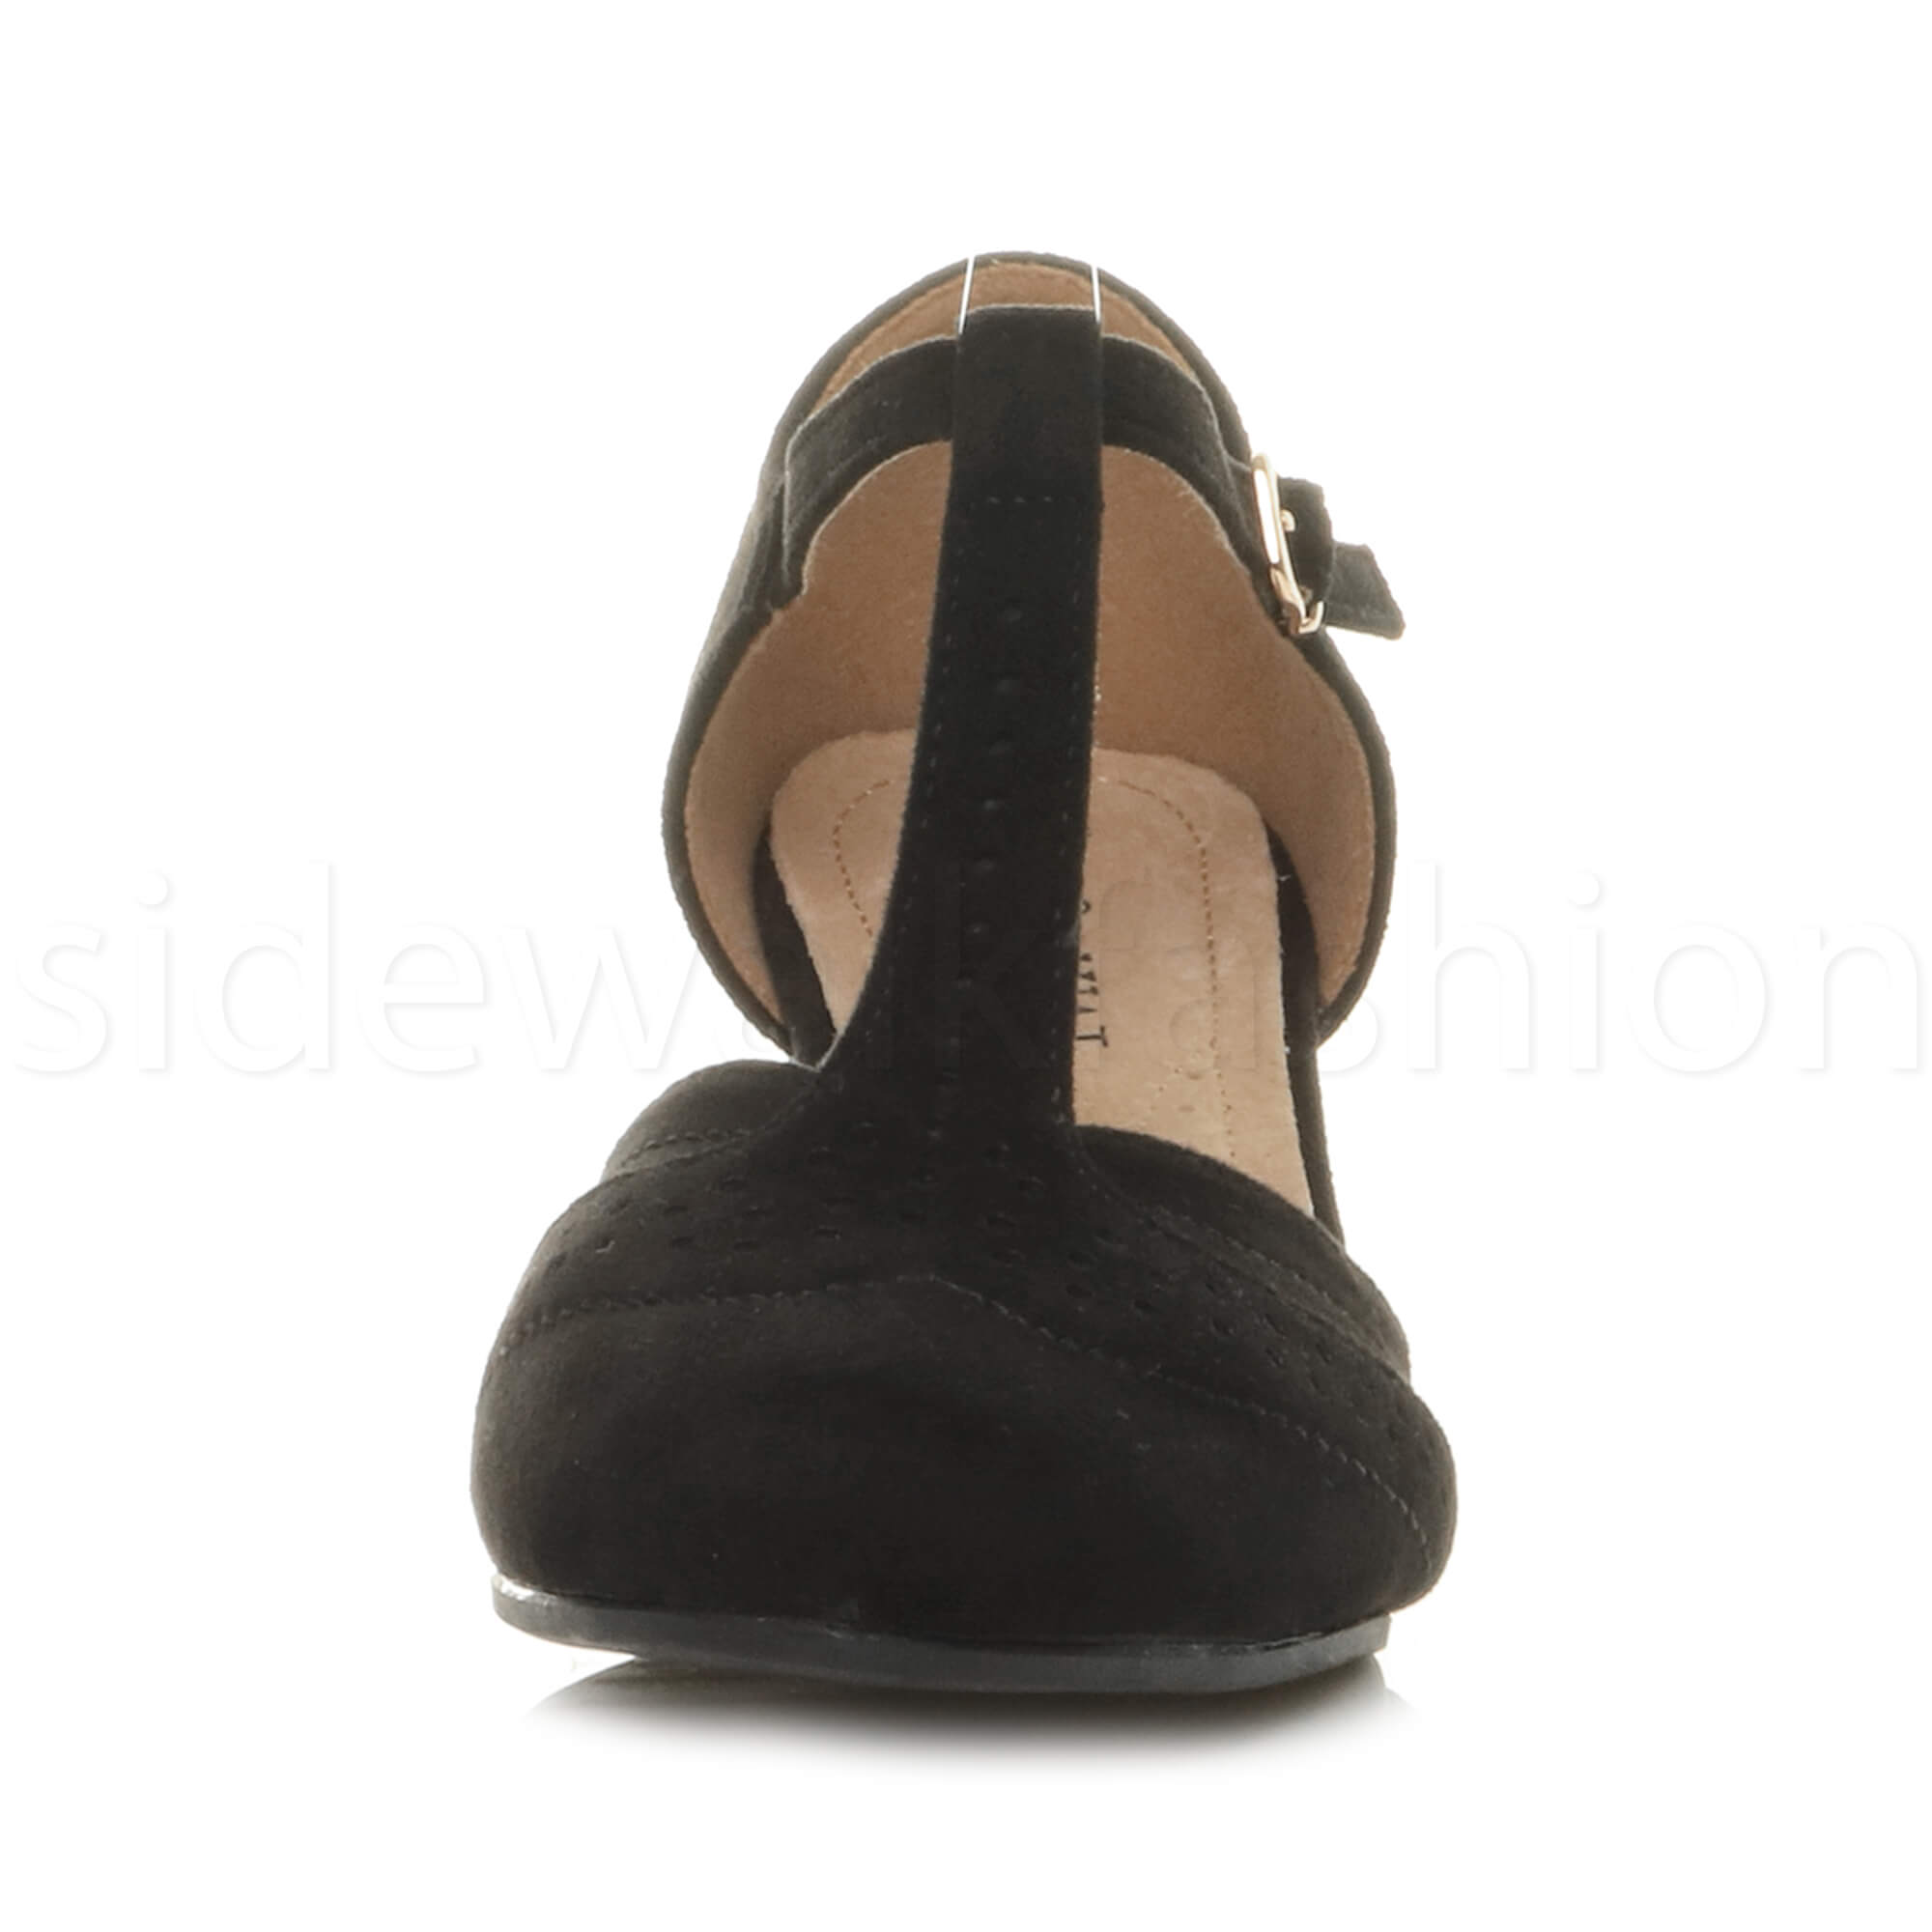 Womens-ladies-block-low-mid-heel-smart-work-Mary-Jane-T-bar-brogue-court-shoes thumbnail 21